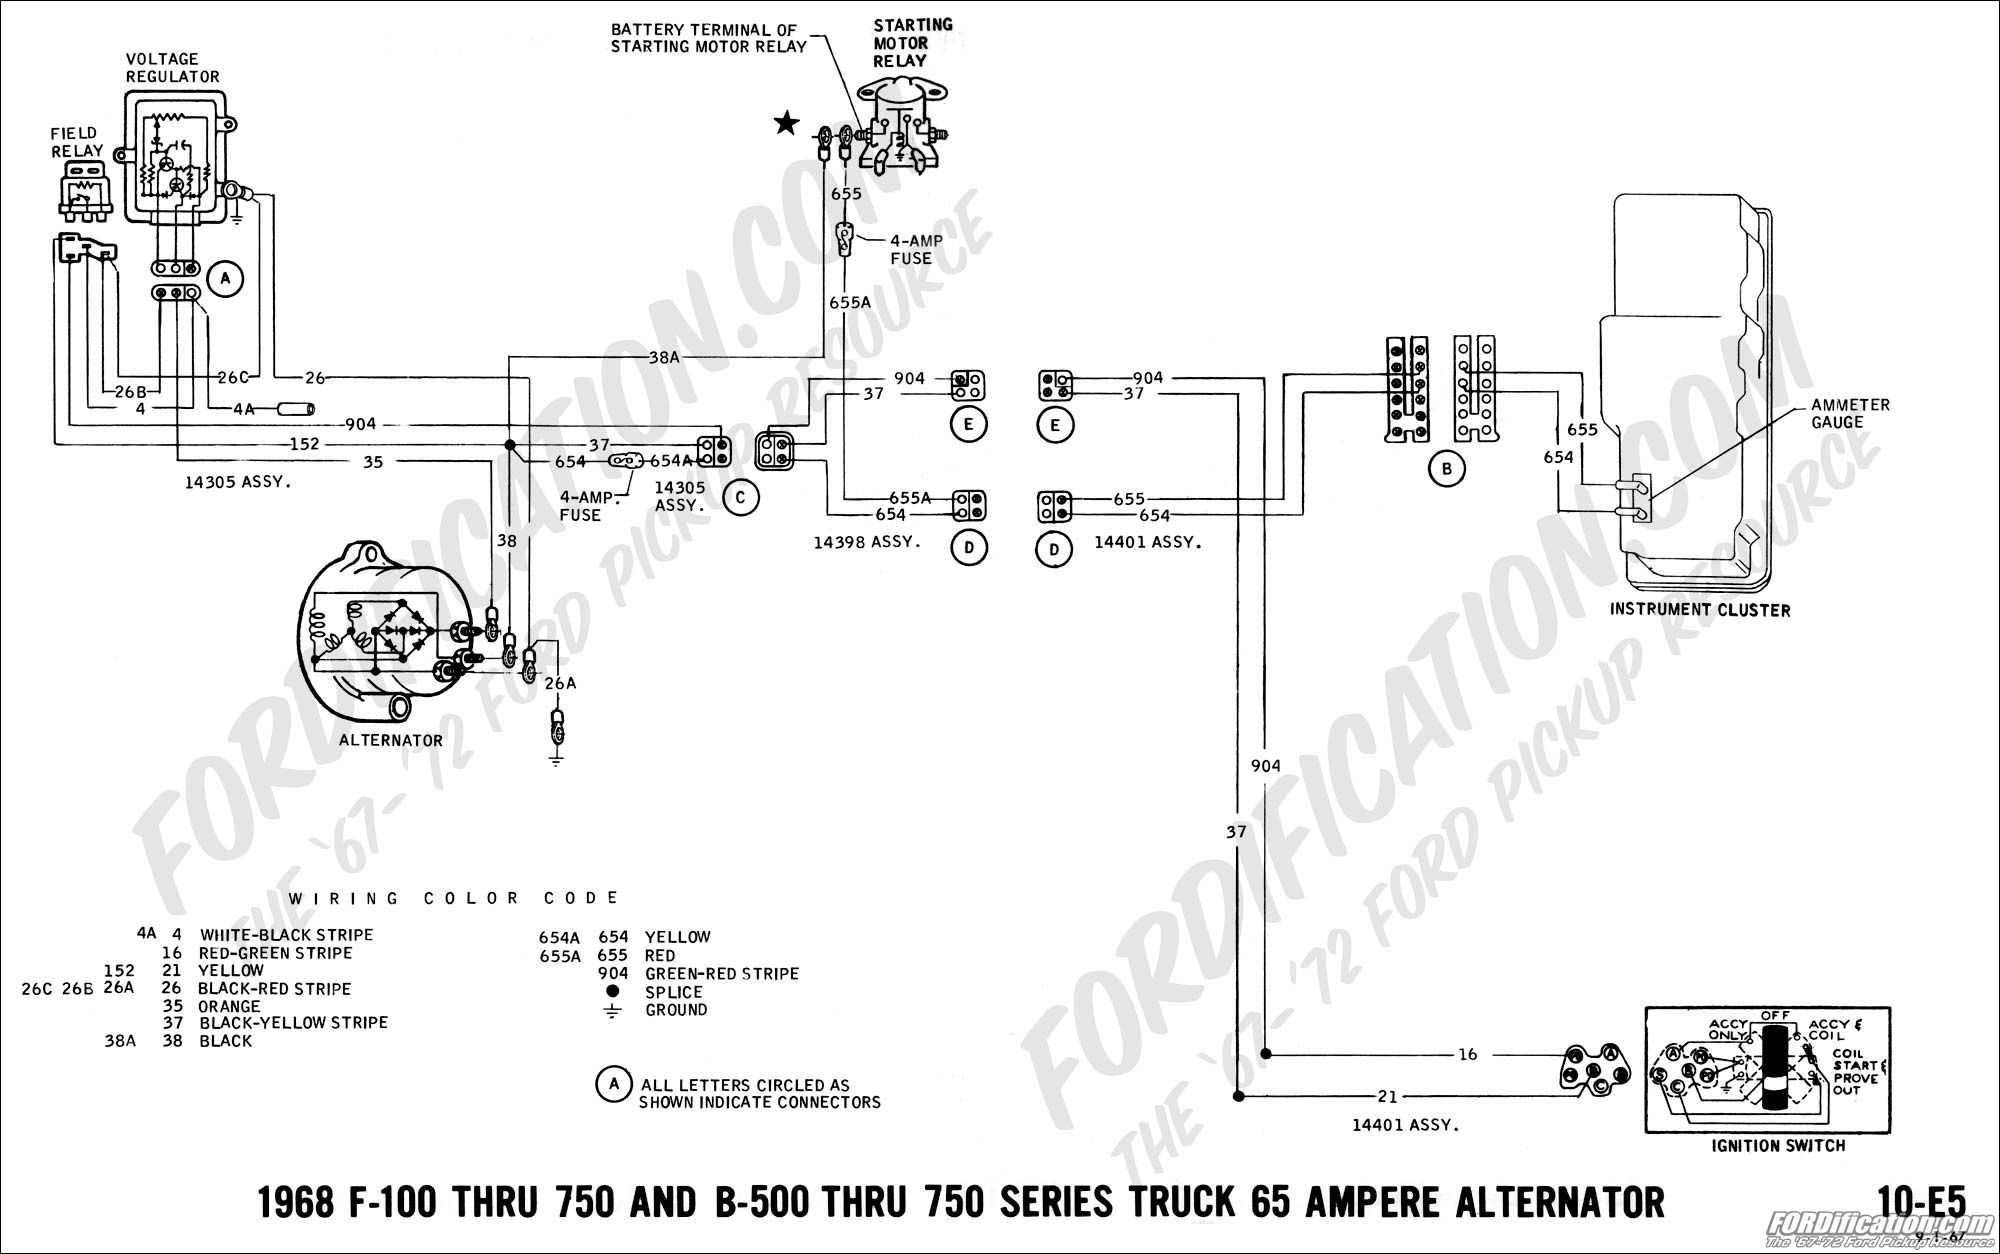 F150 Alternator Warning Light Wiring Diagram. Tachometer